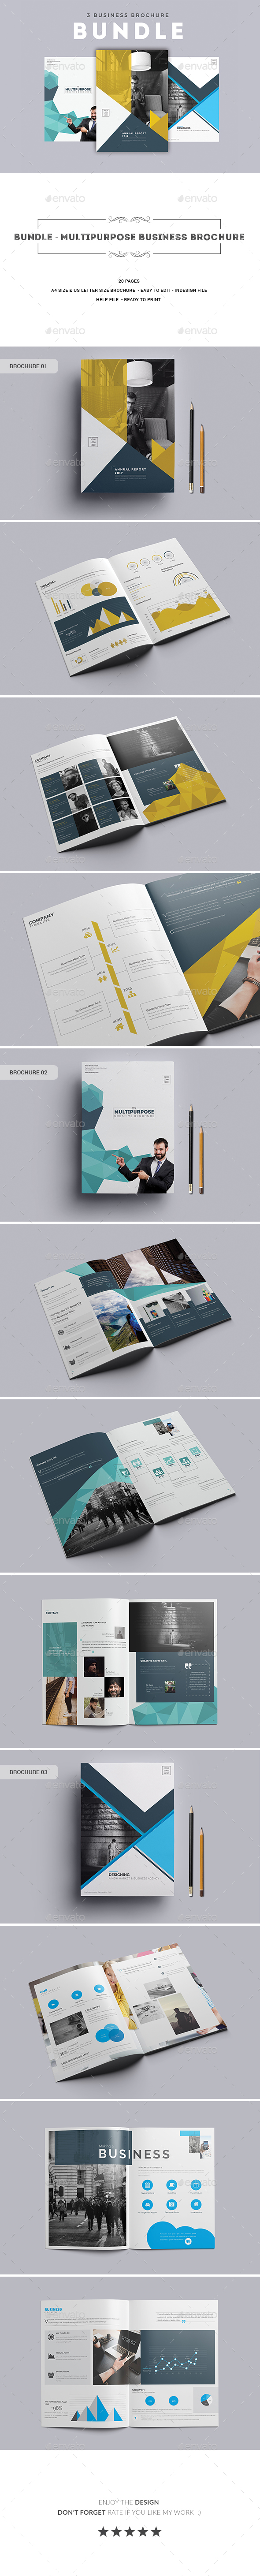 Bundle । Multipurpose Brochure - Corporate Brochures